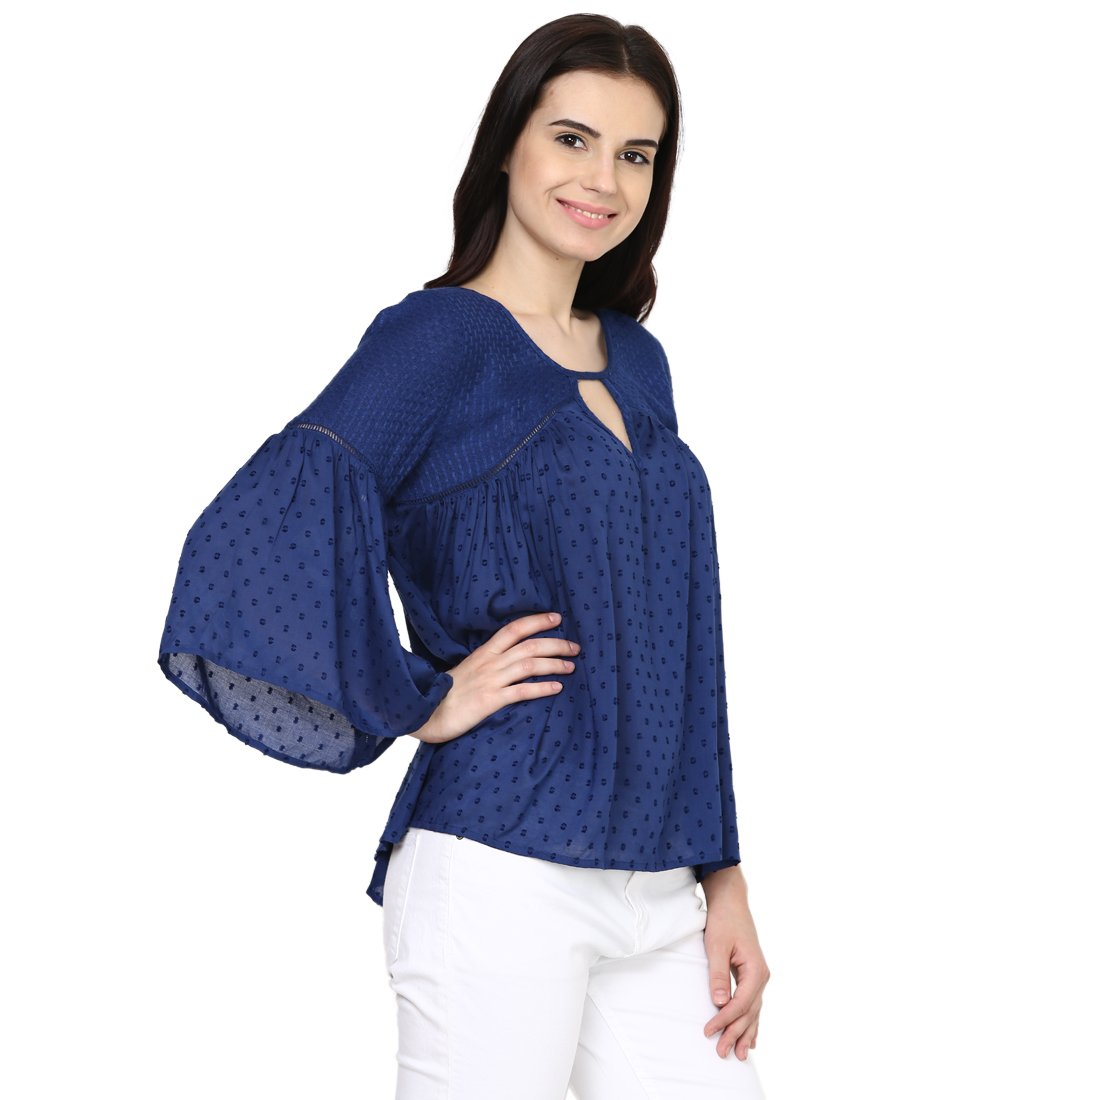 d4b9709887c8d aesmarize  Aesmarizelogo  Aesmarize  aesmarize.com  aesmarizeimages   aesmarizpics aesmarize.com. Sale! Home   Top   Dobby Bell Sleeve Top